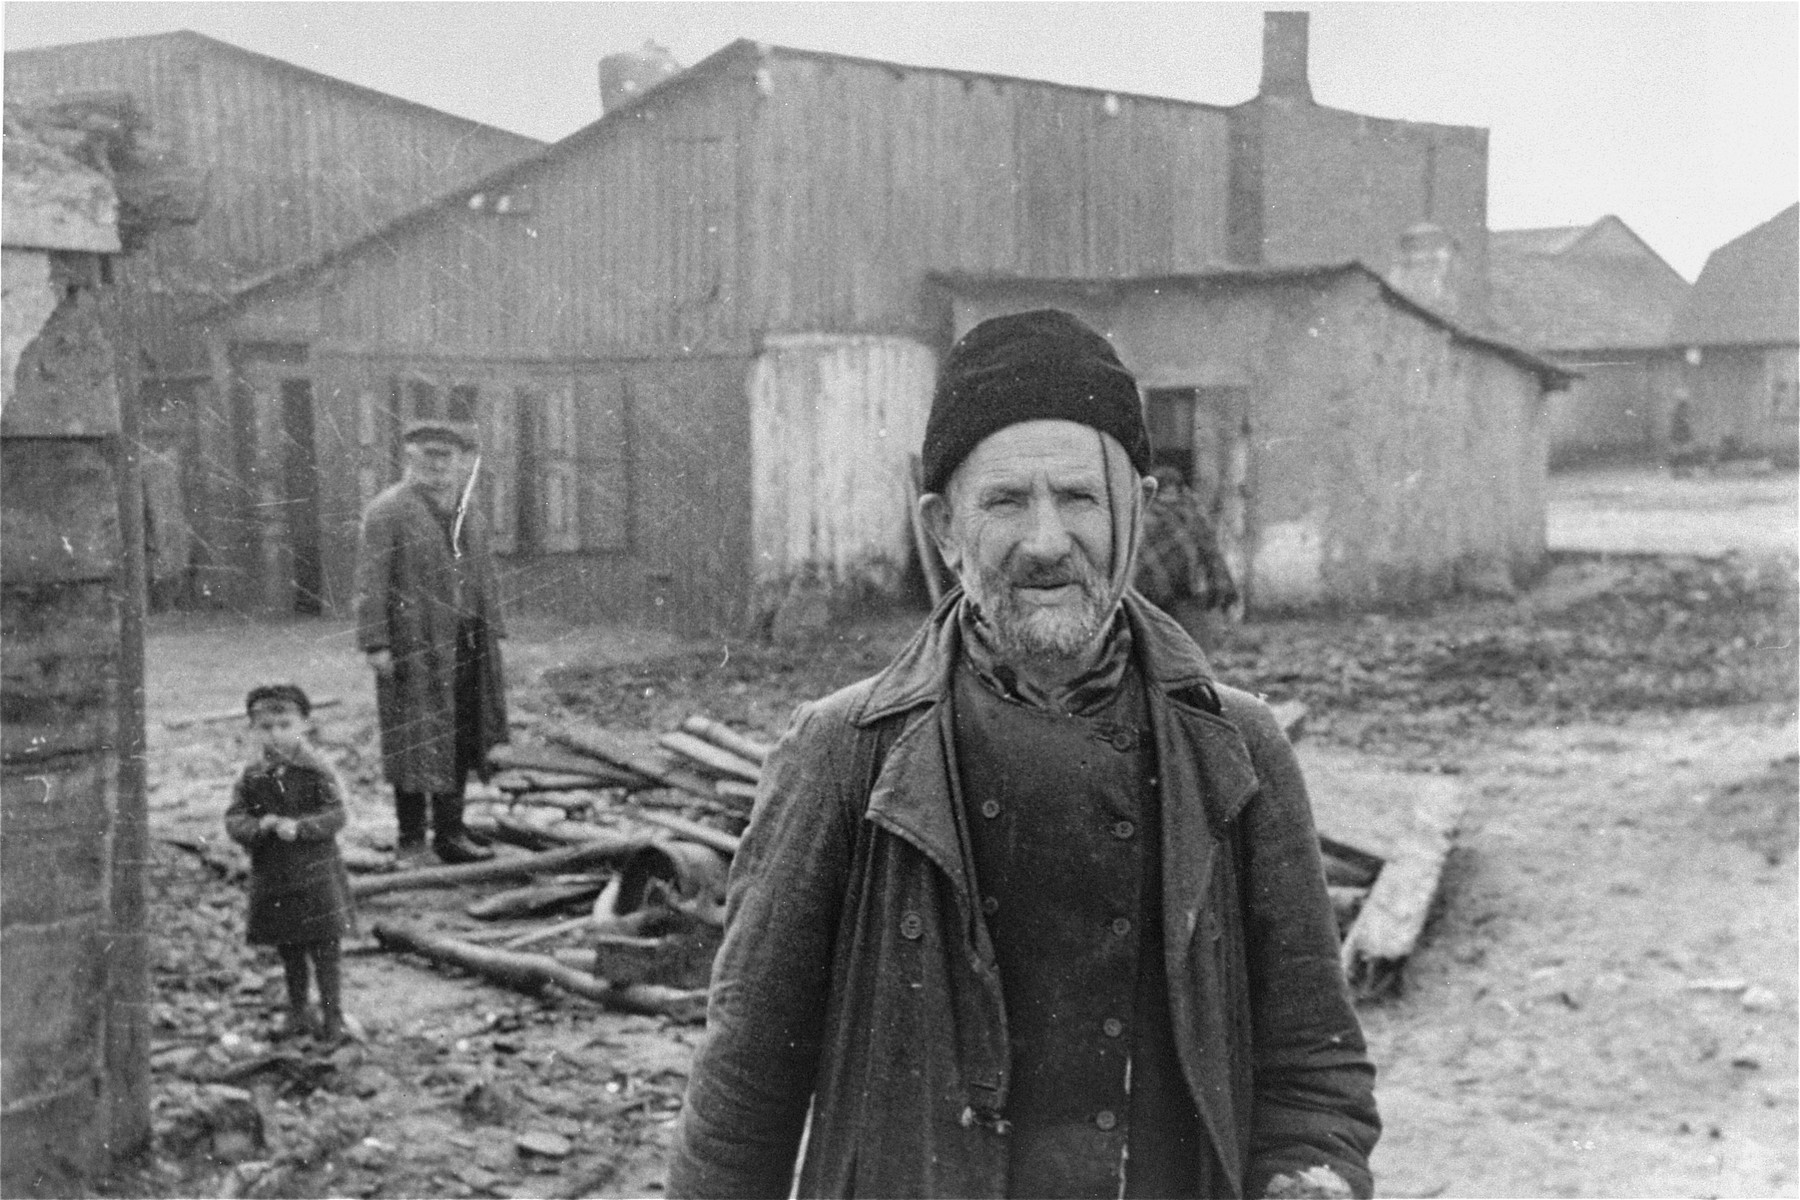 An elderly Jew stands in an open area between buildings in the Kovno ghetto, in front of a pile of wood.